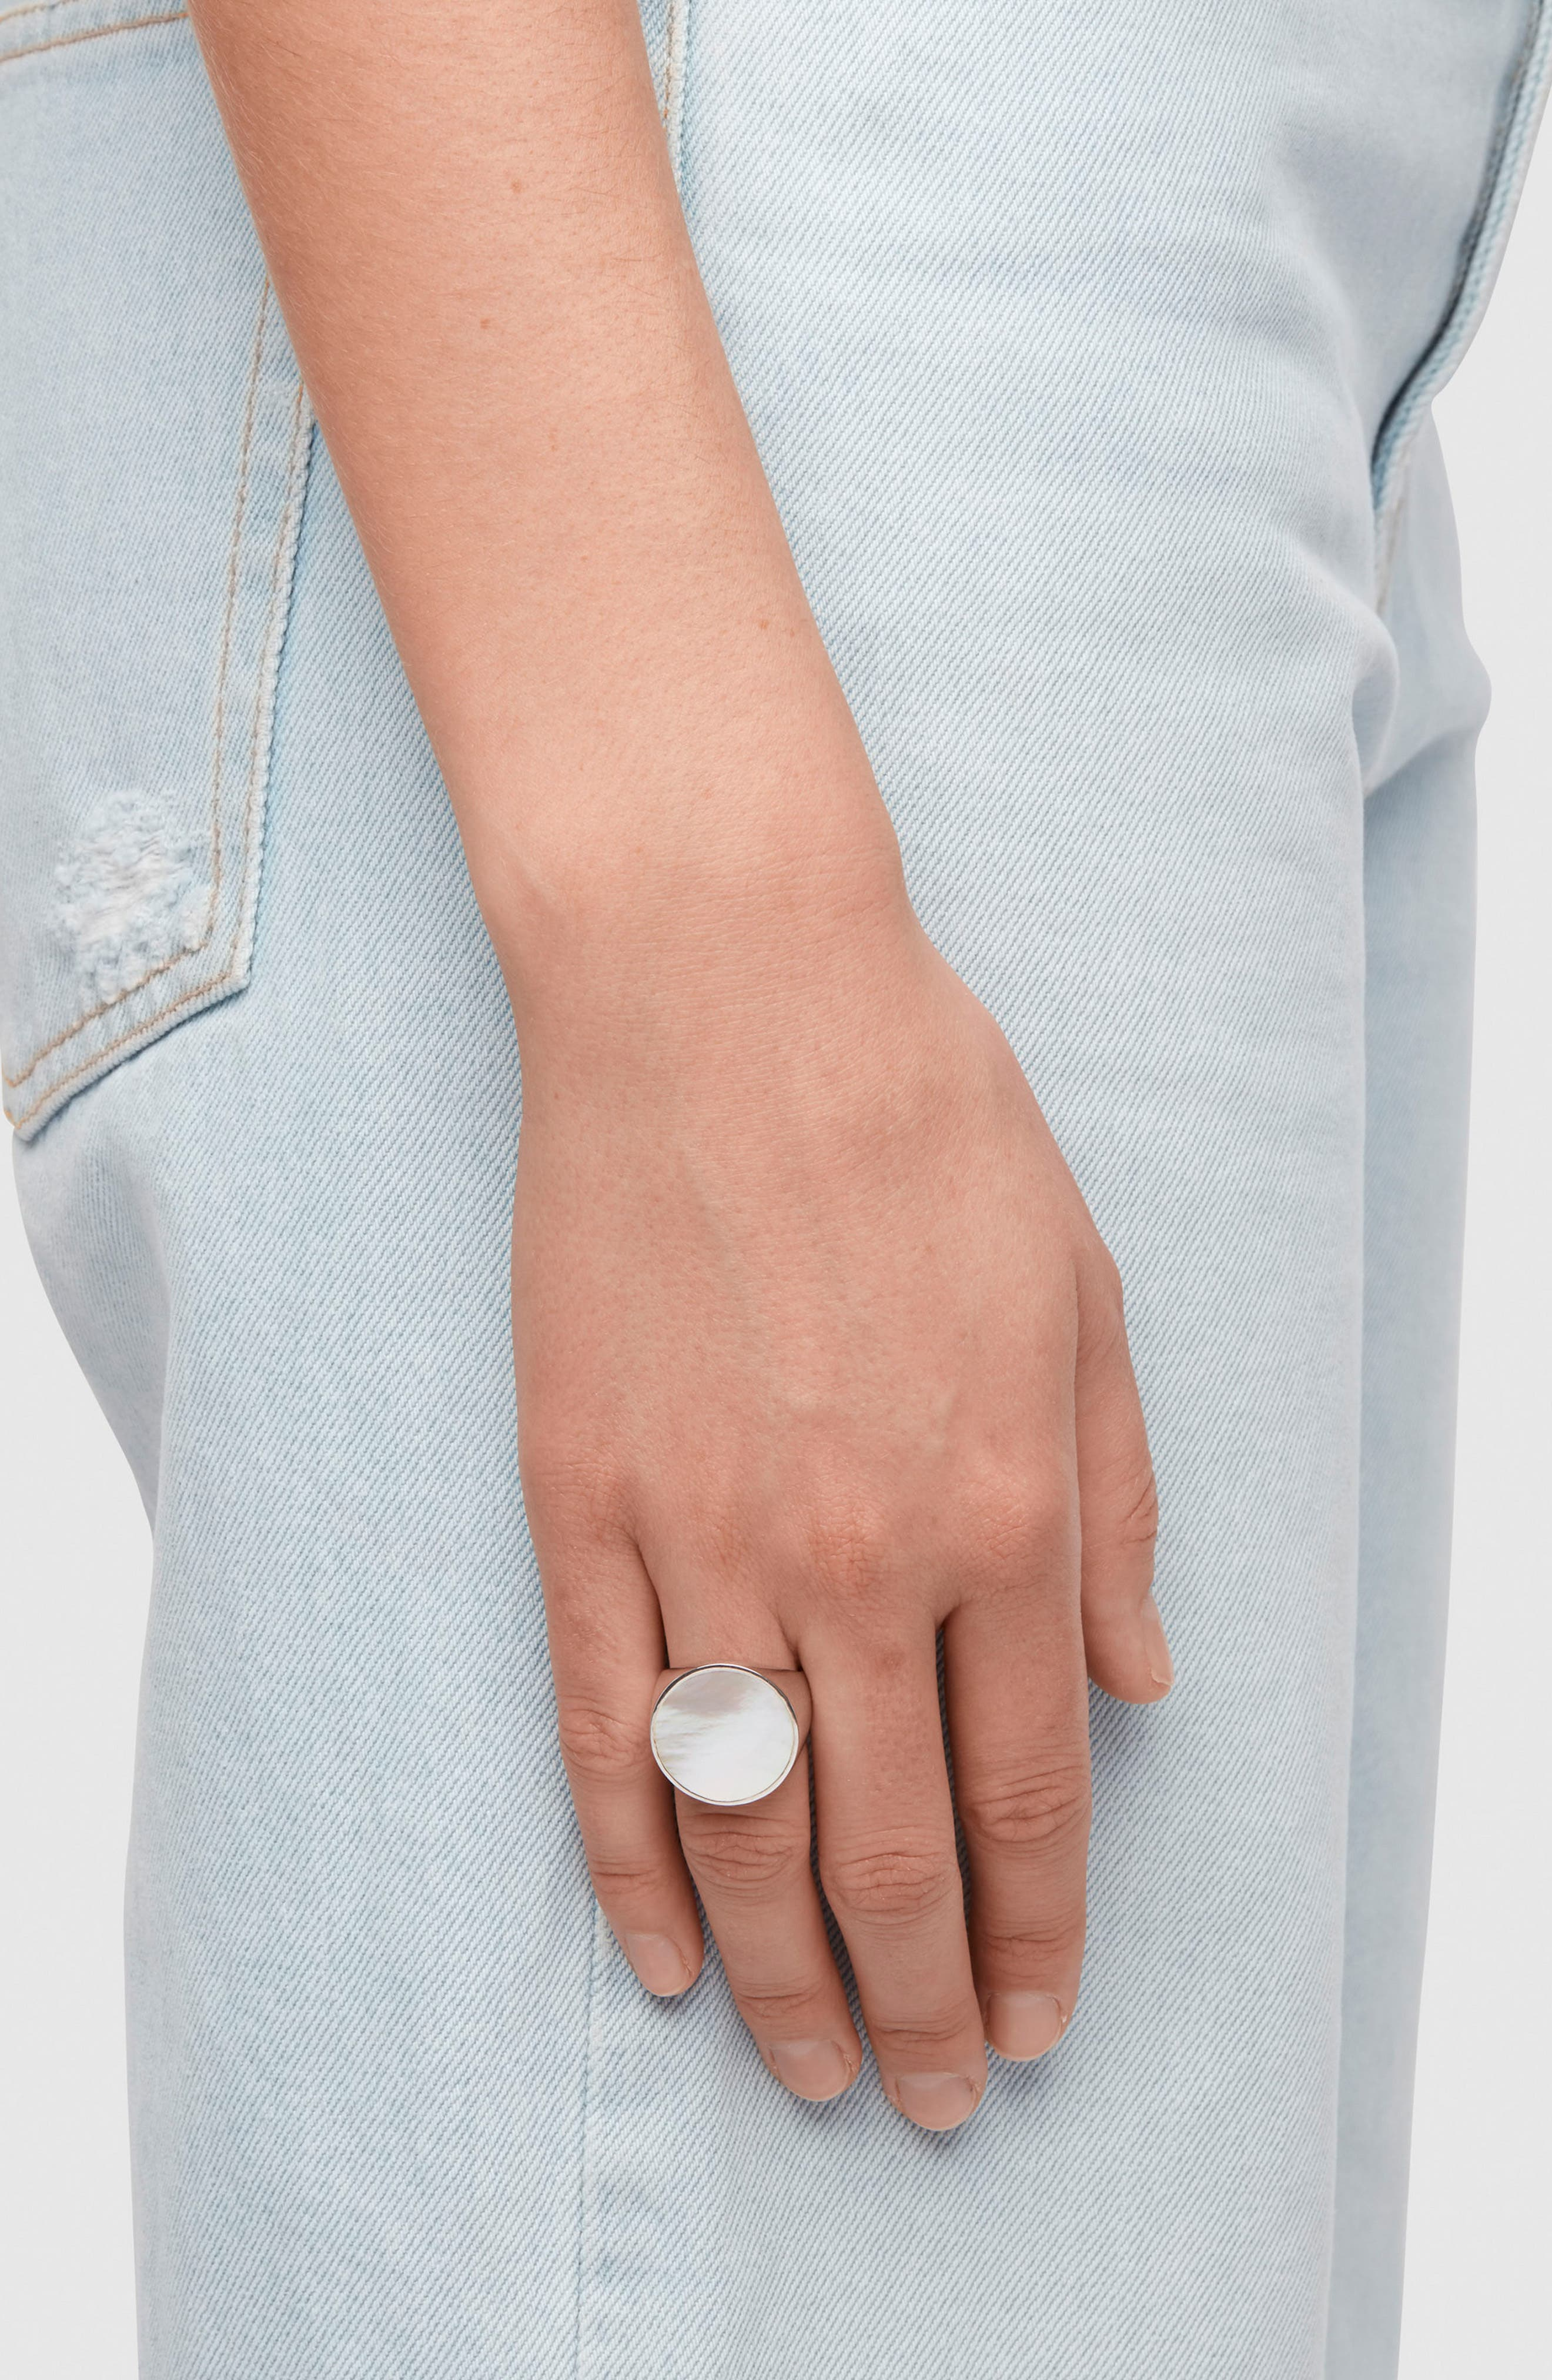 Flush White Mother of Pearl Signet Ring,                             Alternate thumbnail 2, color,